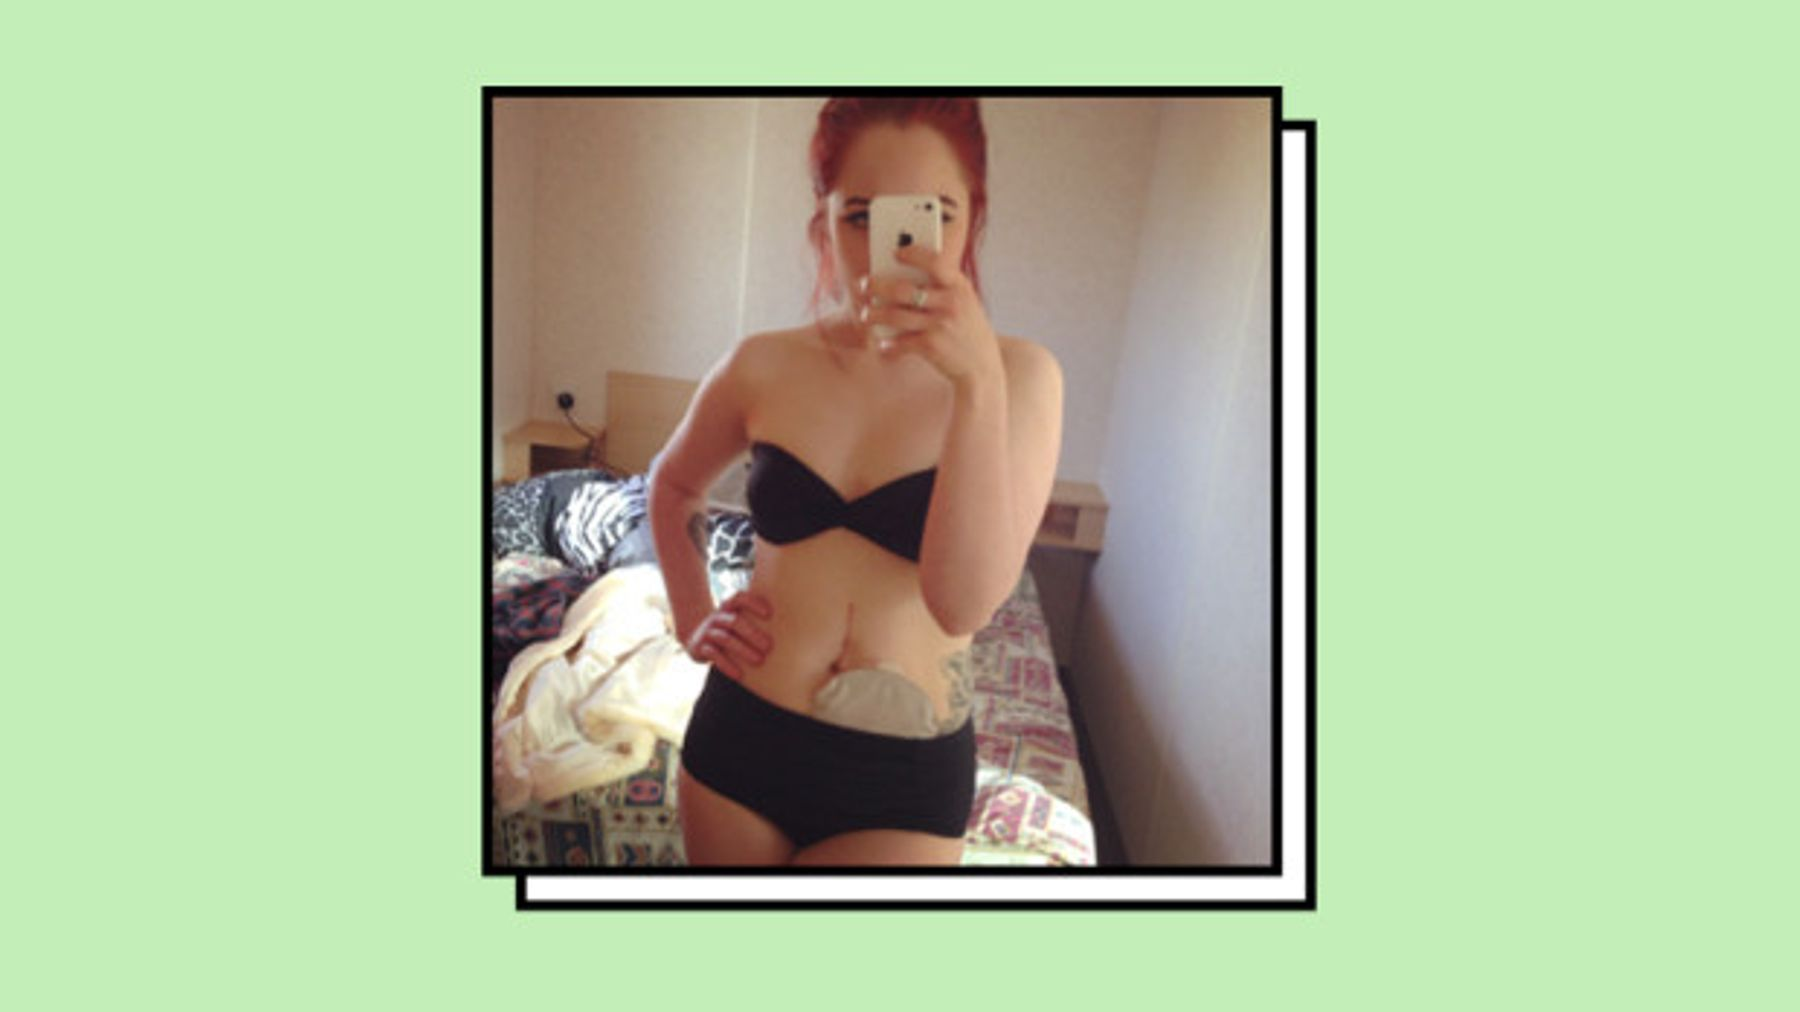 595c4fd1f2 Following emergency bowel surgery six months ago, 20-year-old Hattie was  fitted with an ileostomy bag, which has to be emptied several times a day.